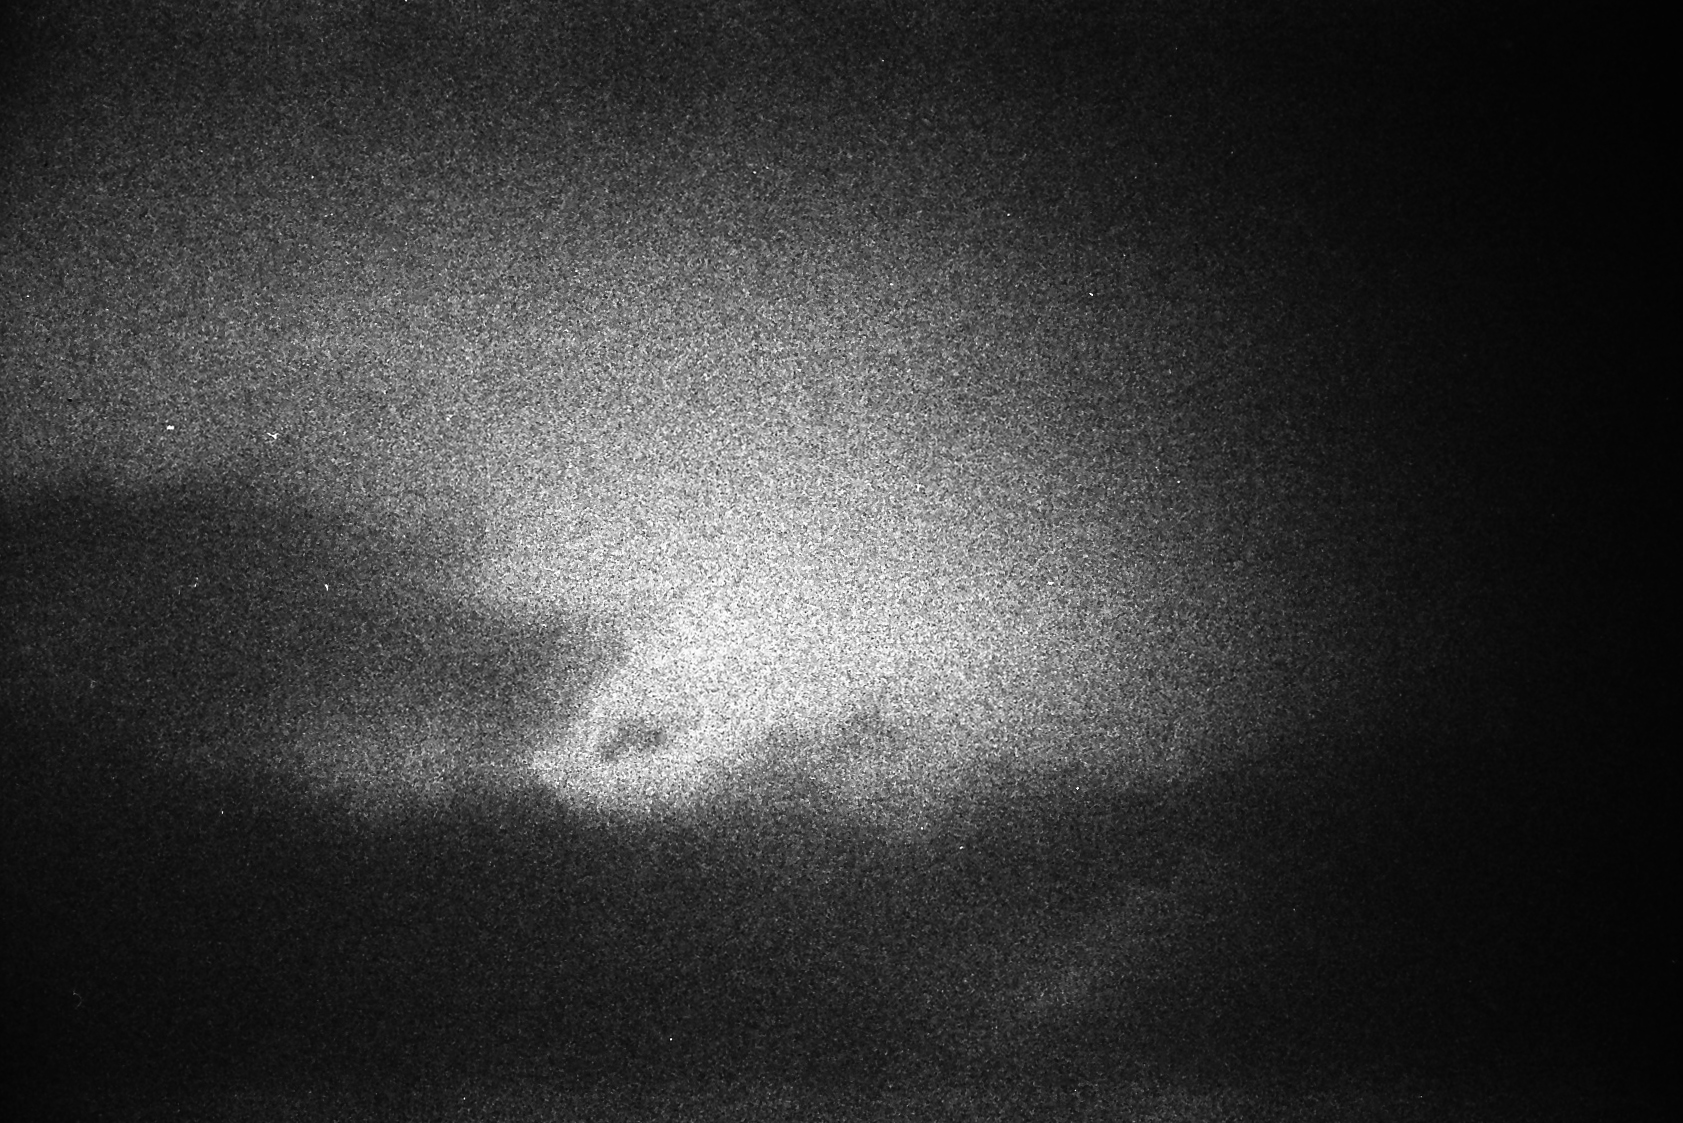 UP, GELATIN SILVER PRINT ON ILFORD PAPER, 2013